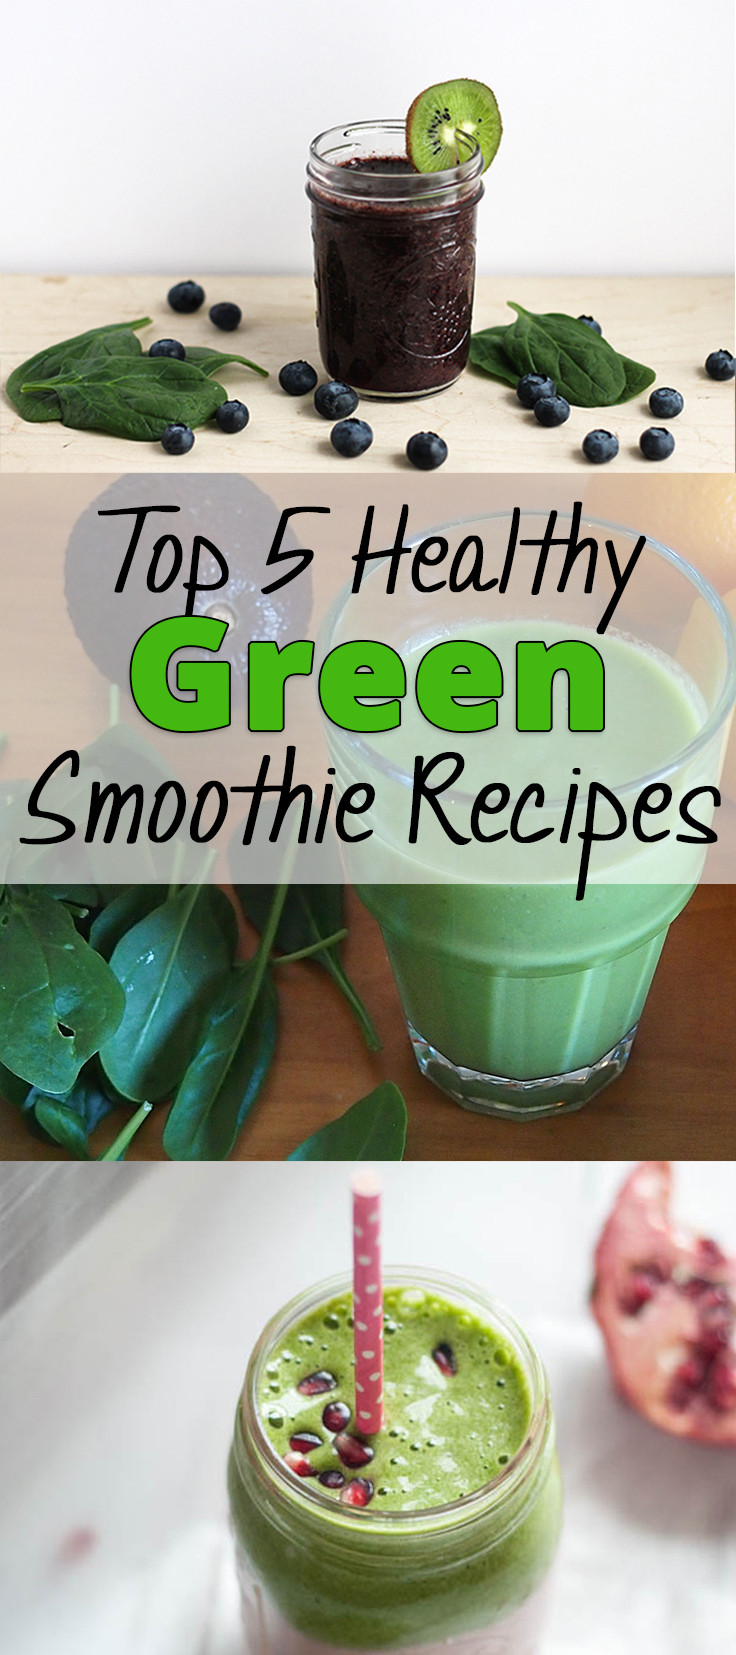 Best Healthy Smoothie Recipes  Top 5 Healthy Green Smoothie Recipes Brick & Glitter